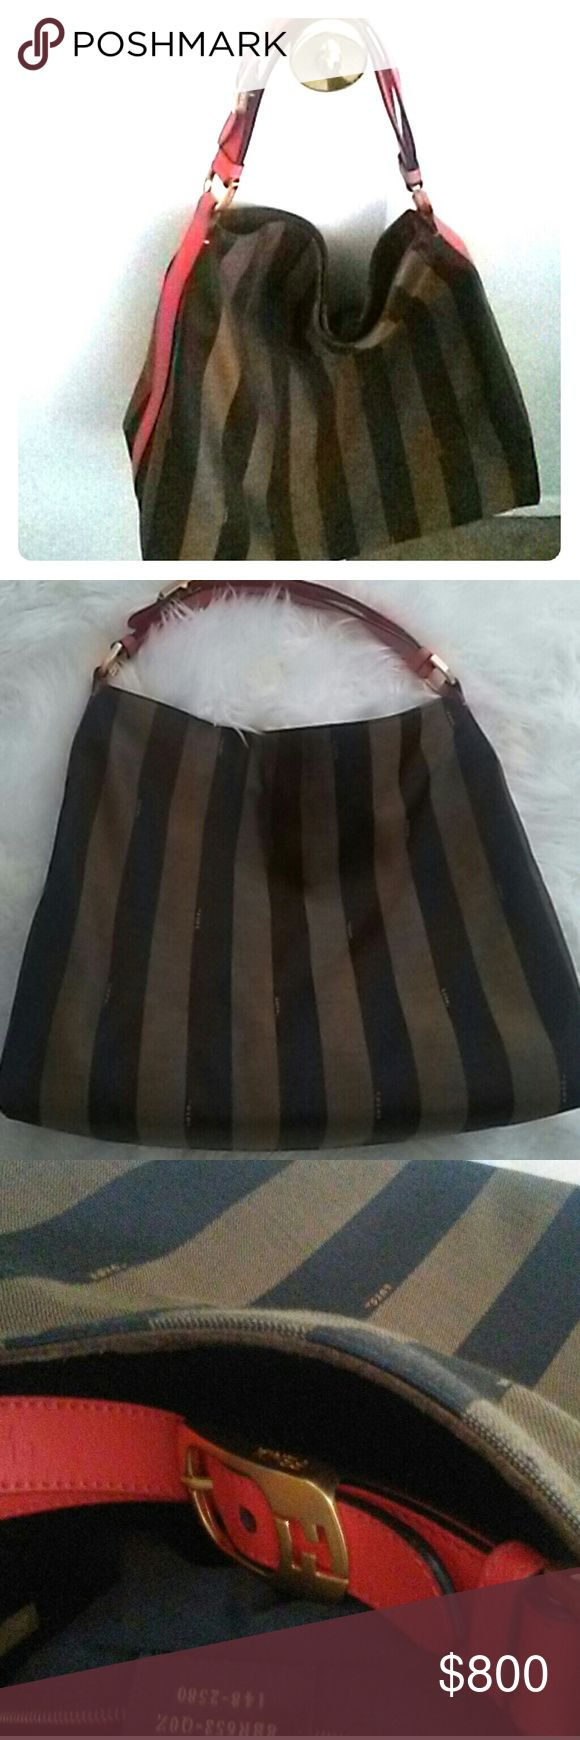 🔥Fendi penguin hobo💜Price firm Superb Fendi hobo. Literally only worn half a day. No signs of wear nowhere. Dust bag not available but will ship packaged great. Matching espadrille in euro size 39/US 9 available in separate listing Fendi Bags Hobos